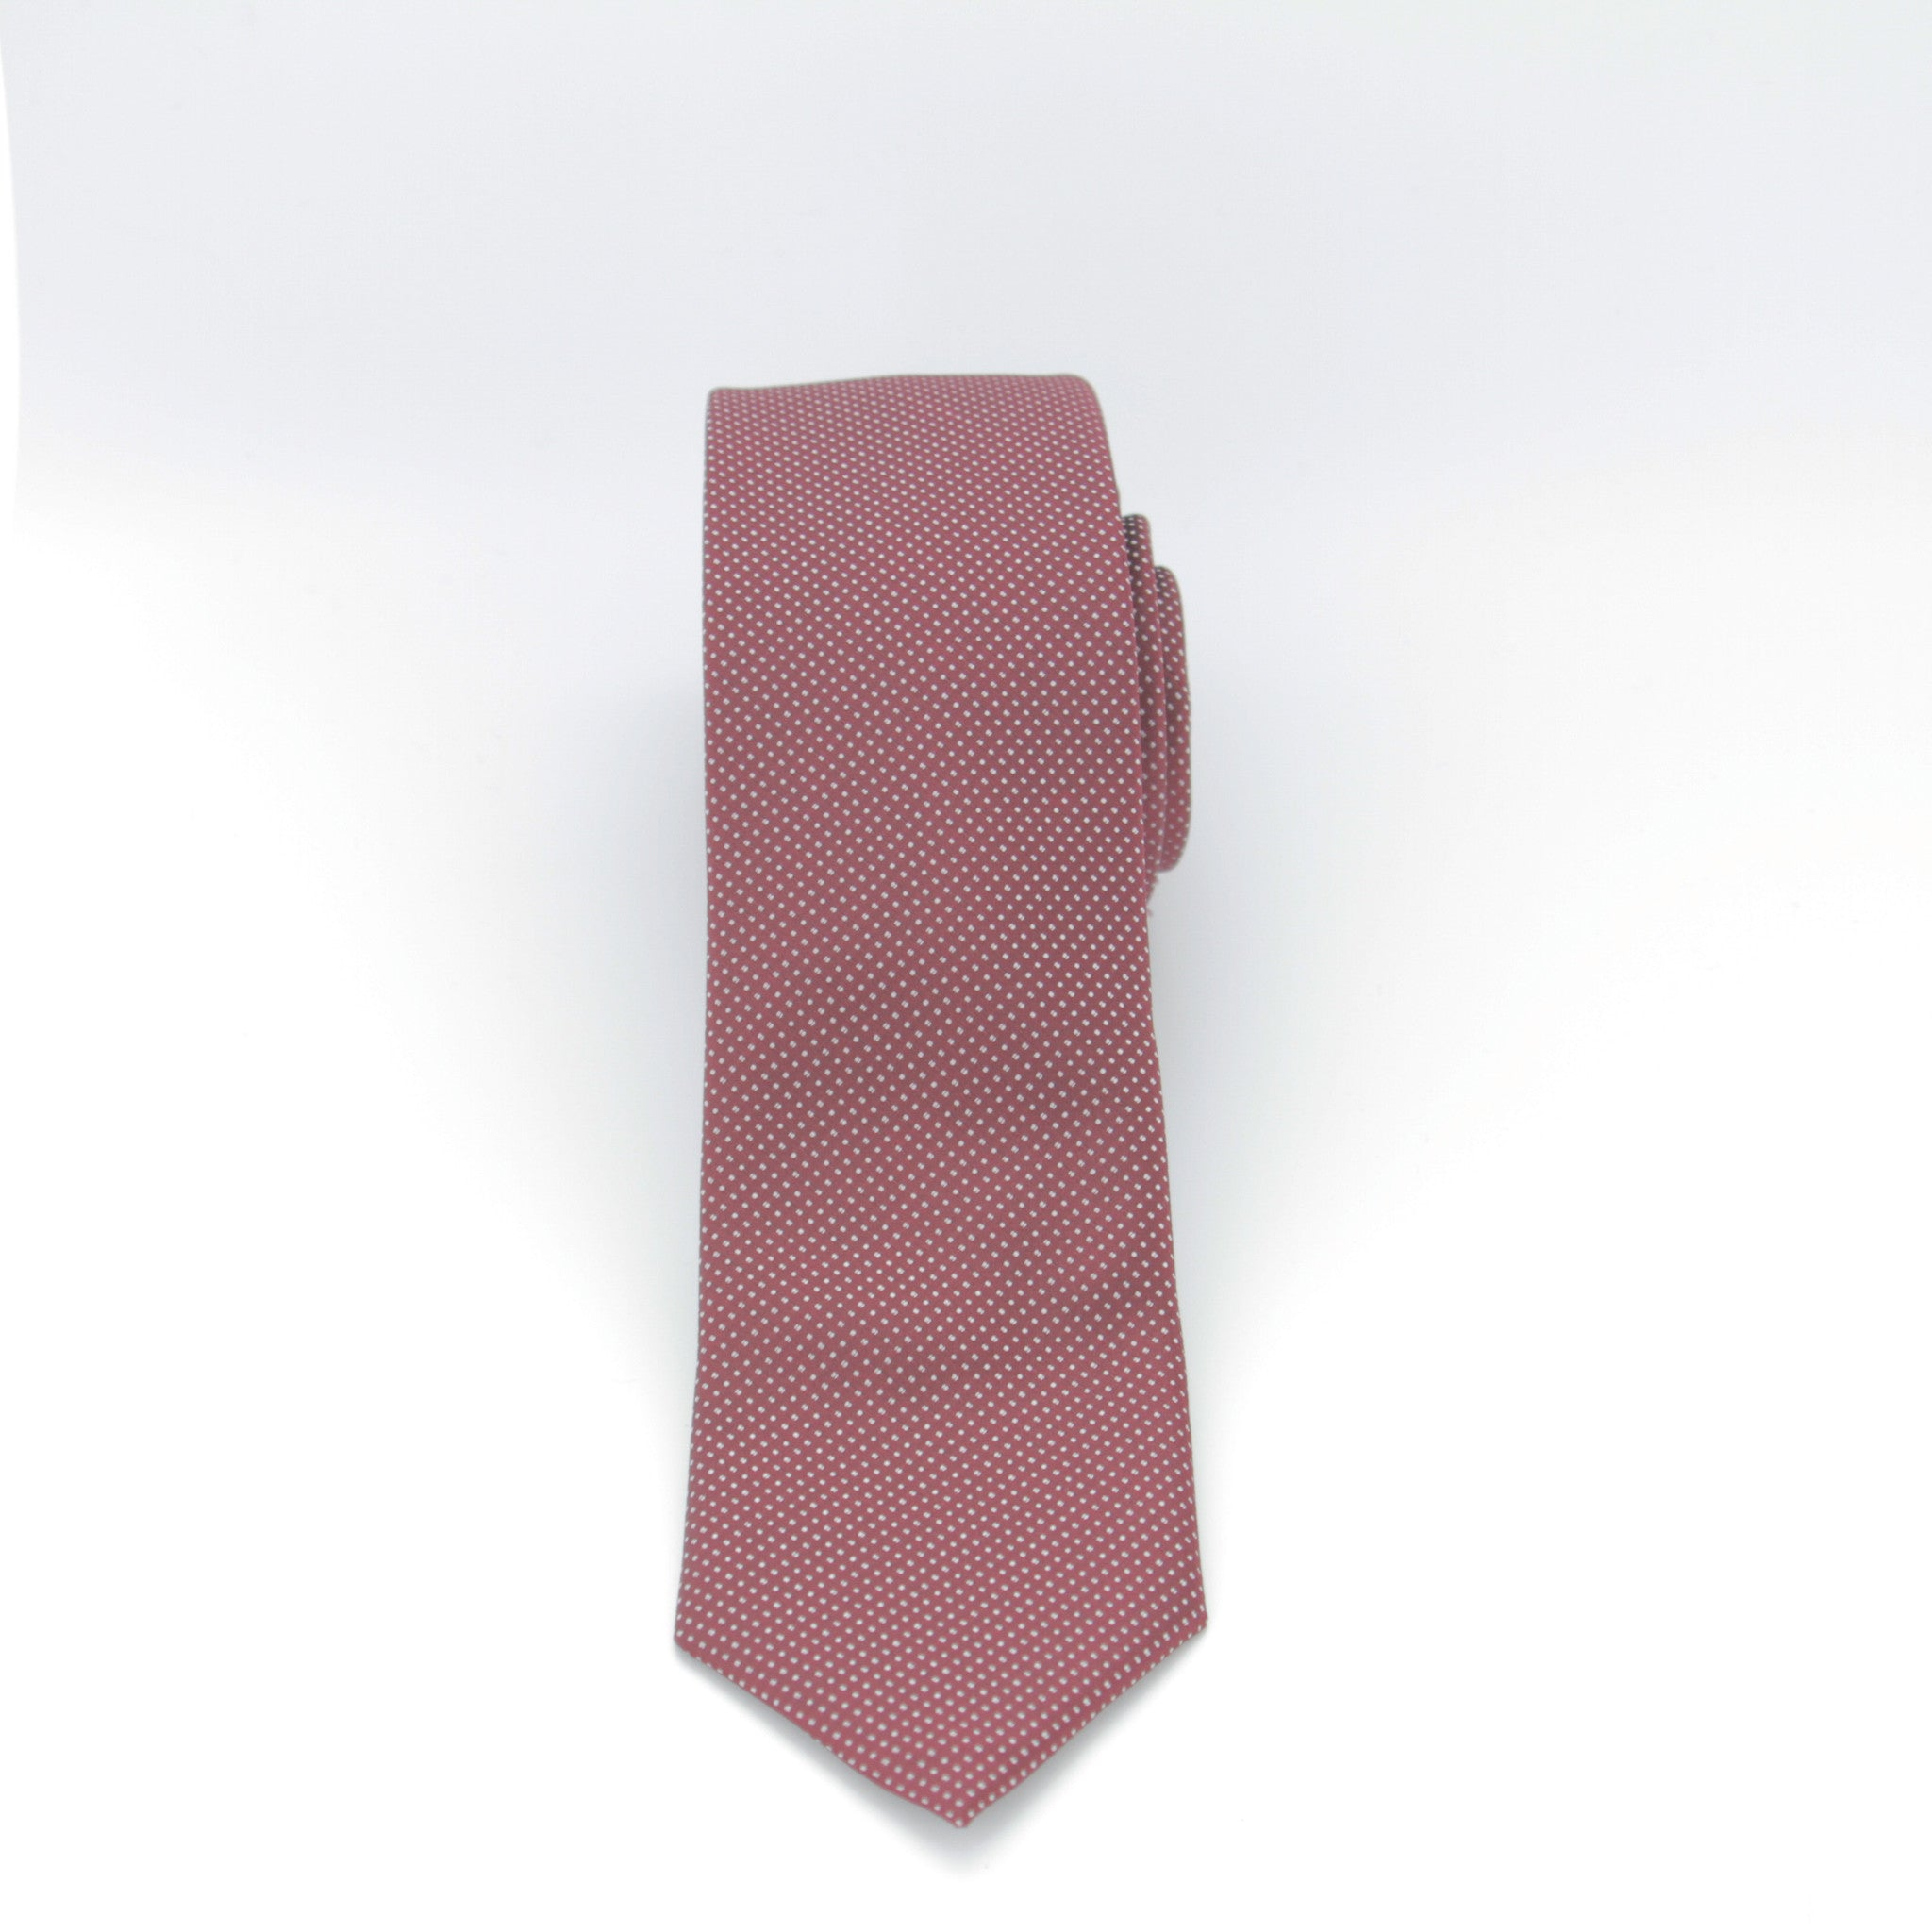 Burgundy with White Dots Long Tie